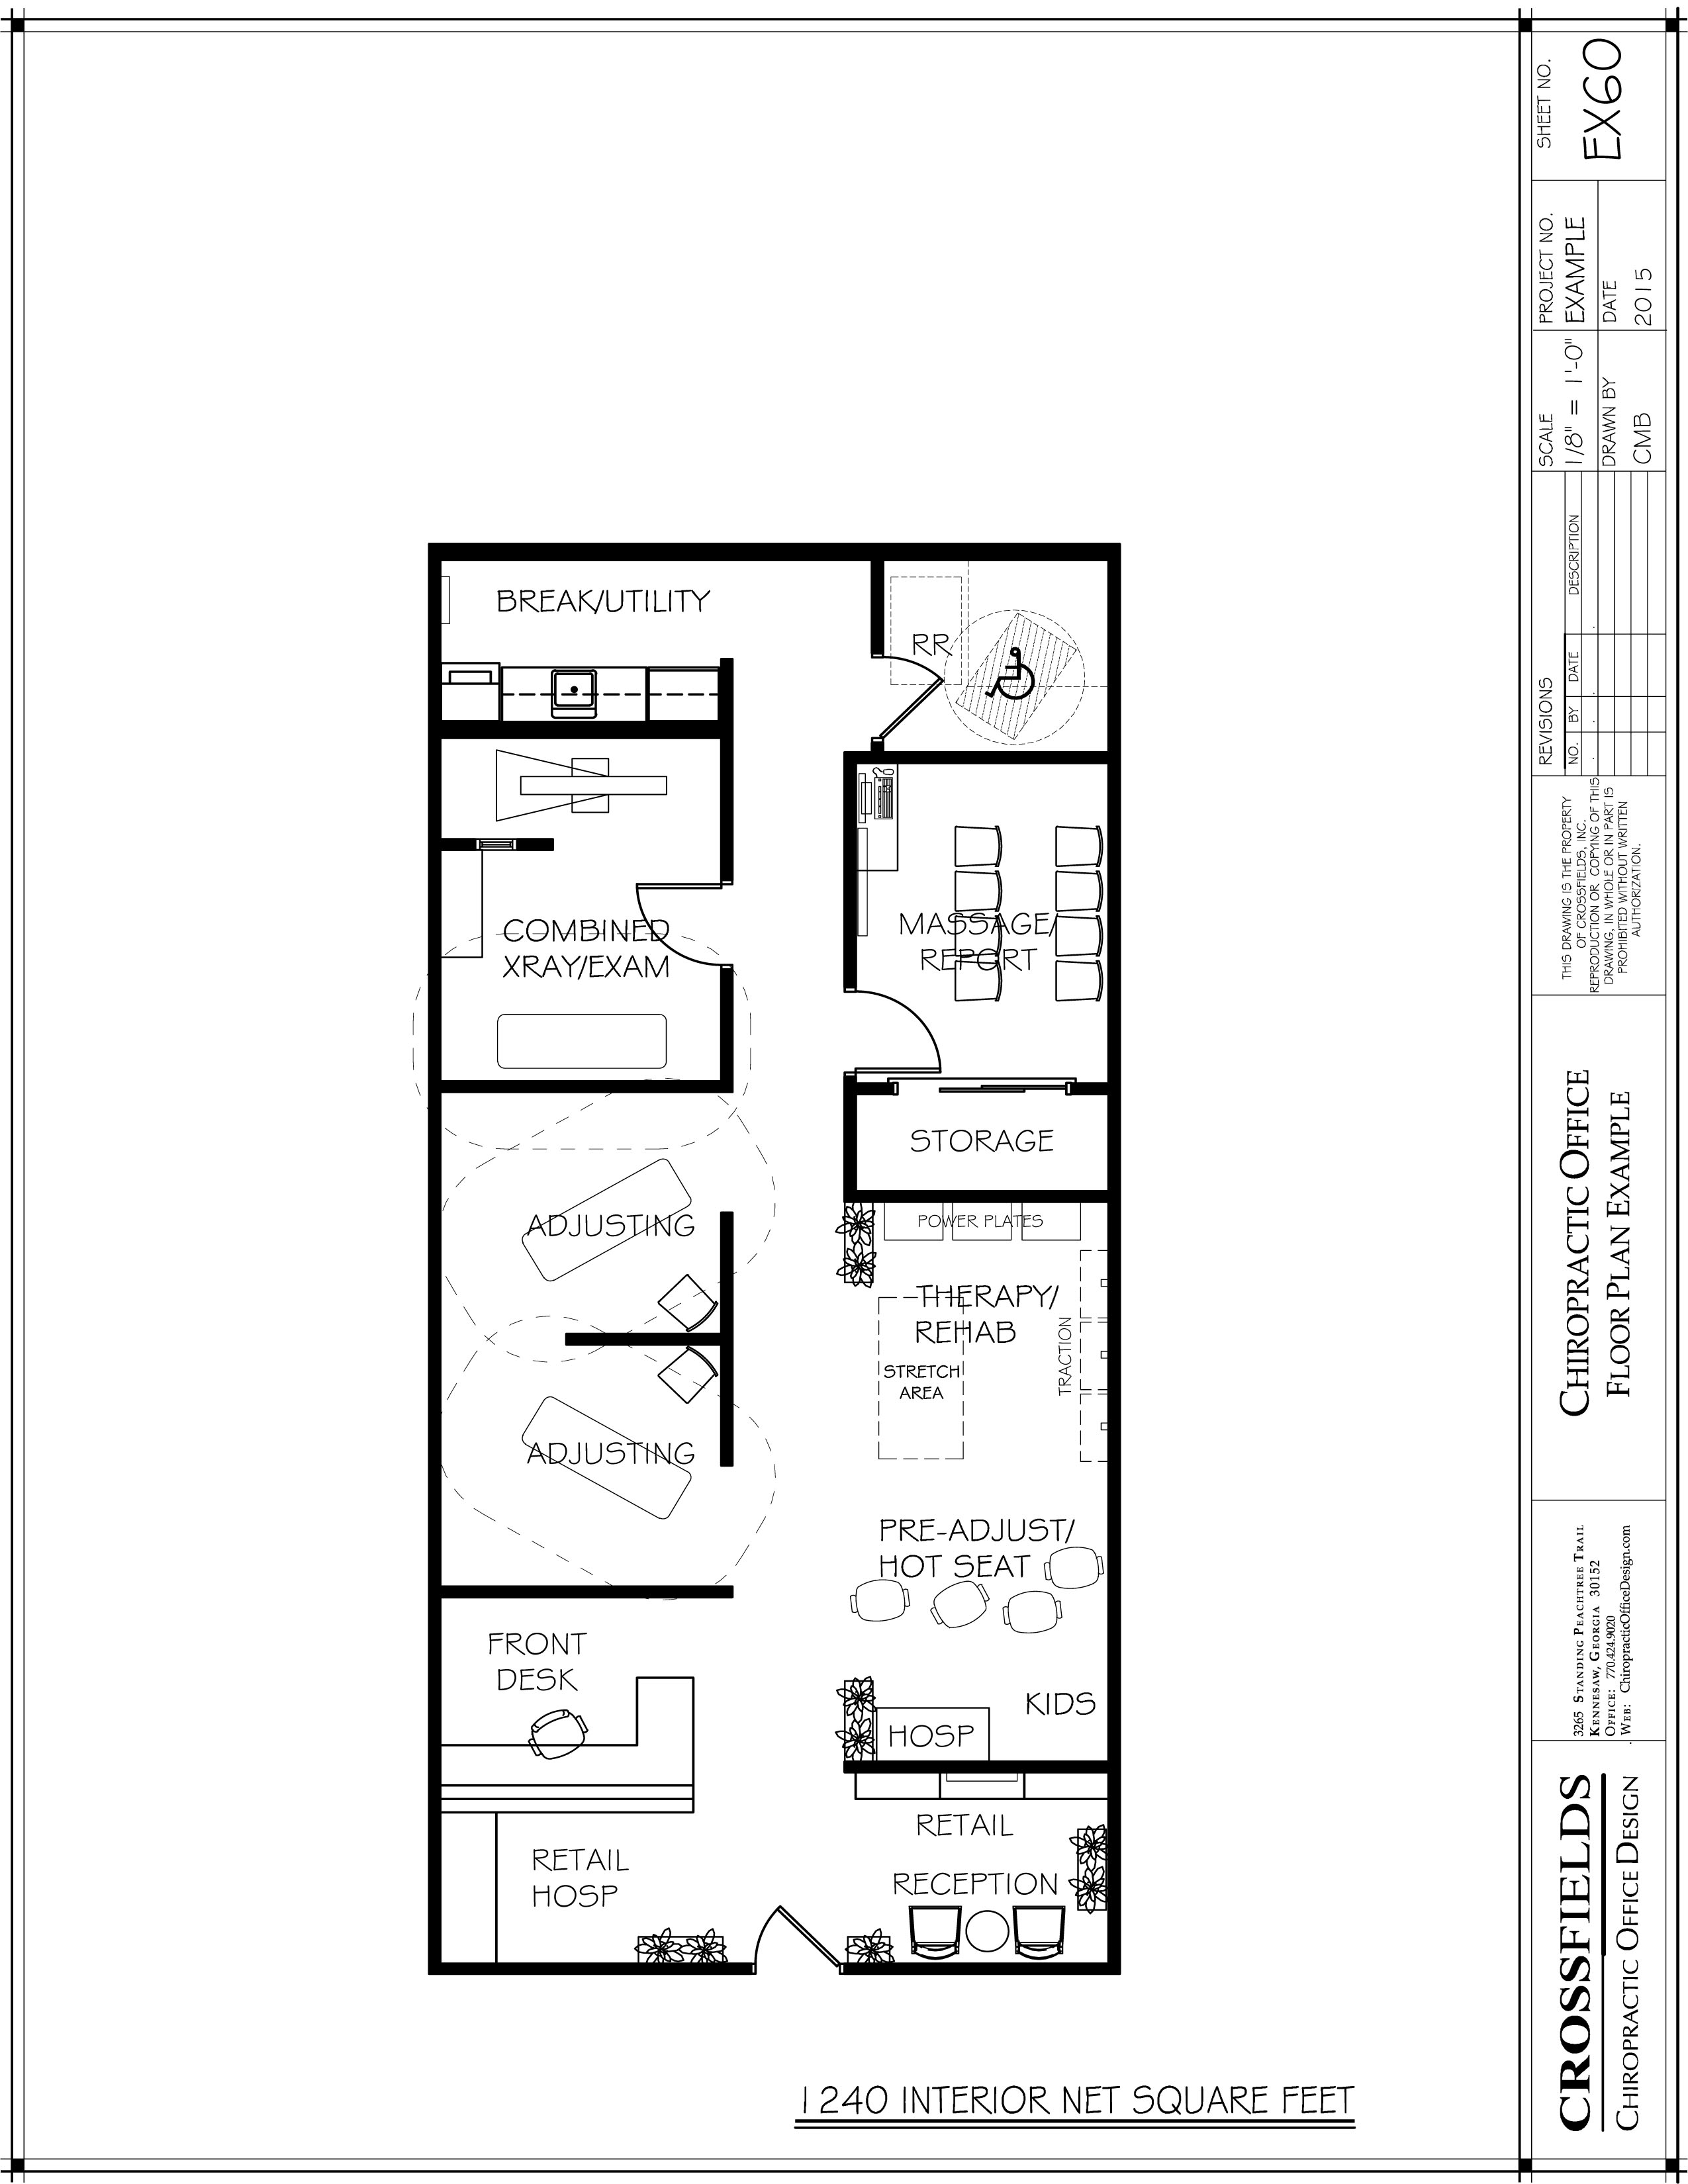 Drawn office sample Plan Semi Rooms and Plan